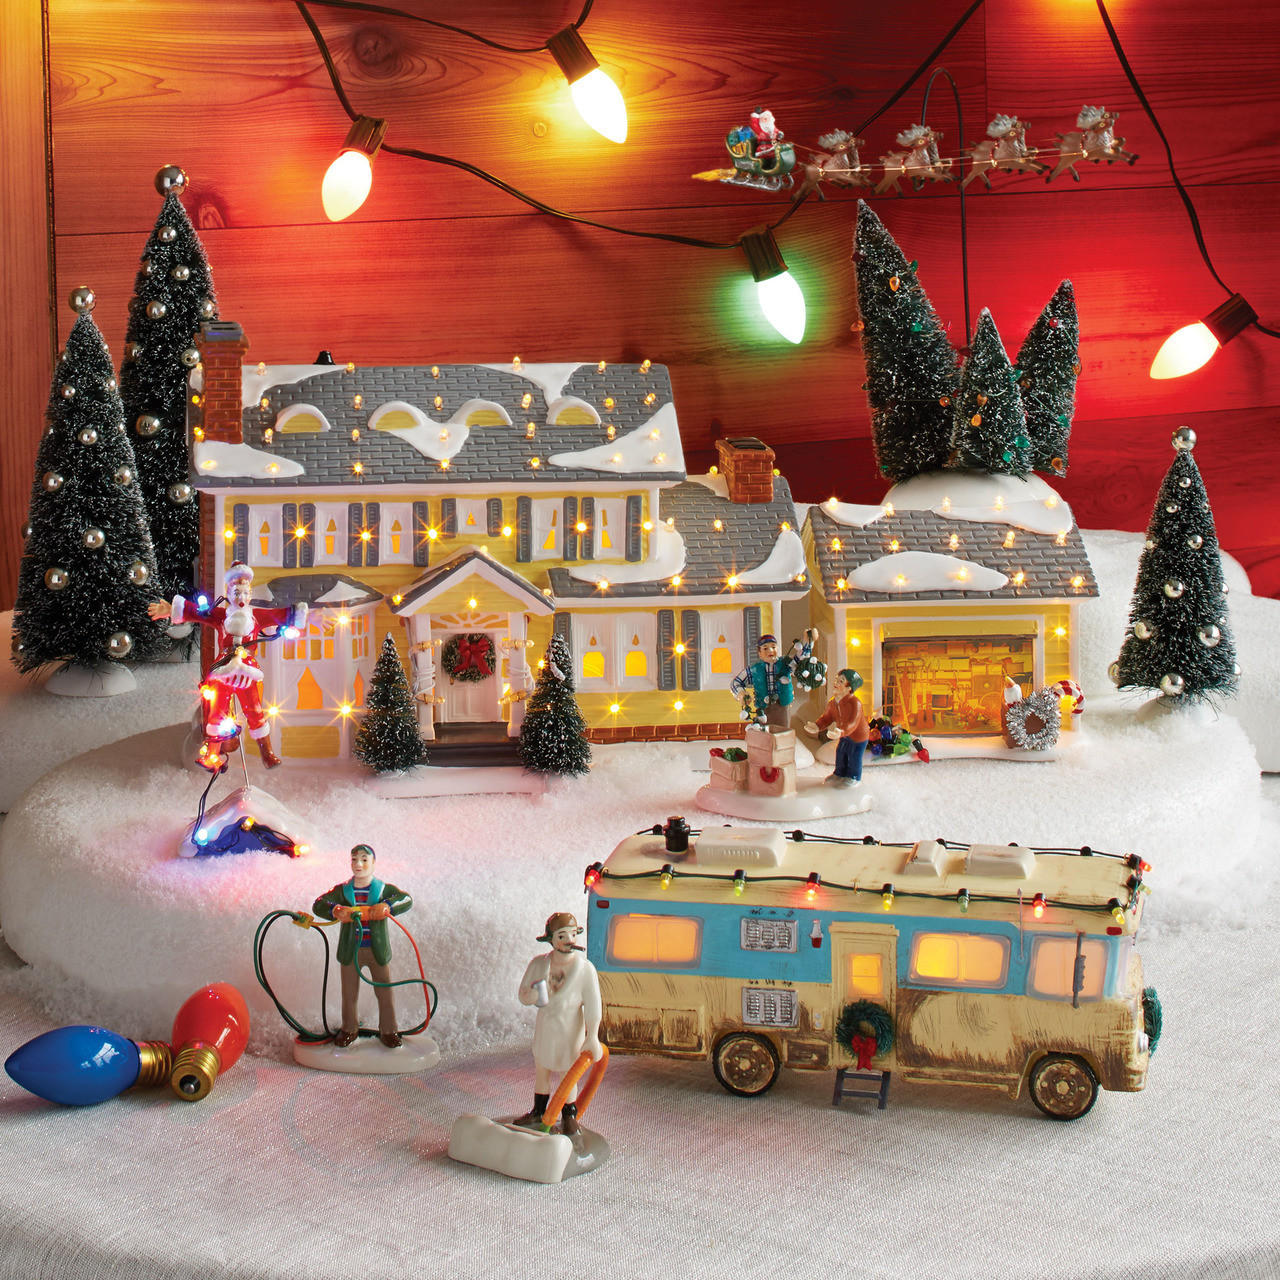 Christmas Vacation House Lights.Department 56 Christmas Vacation The Griswold S Holiday House Garage